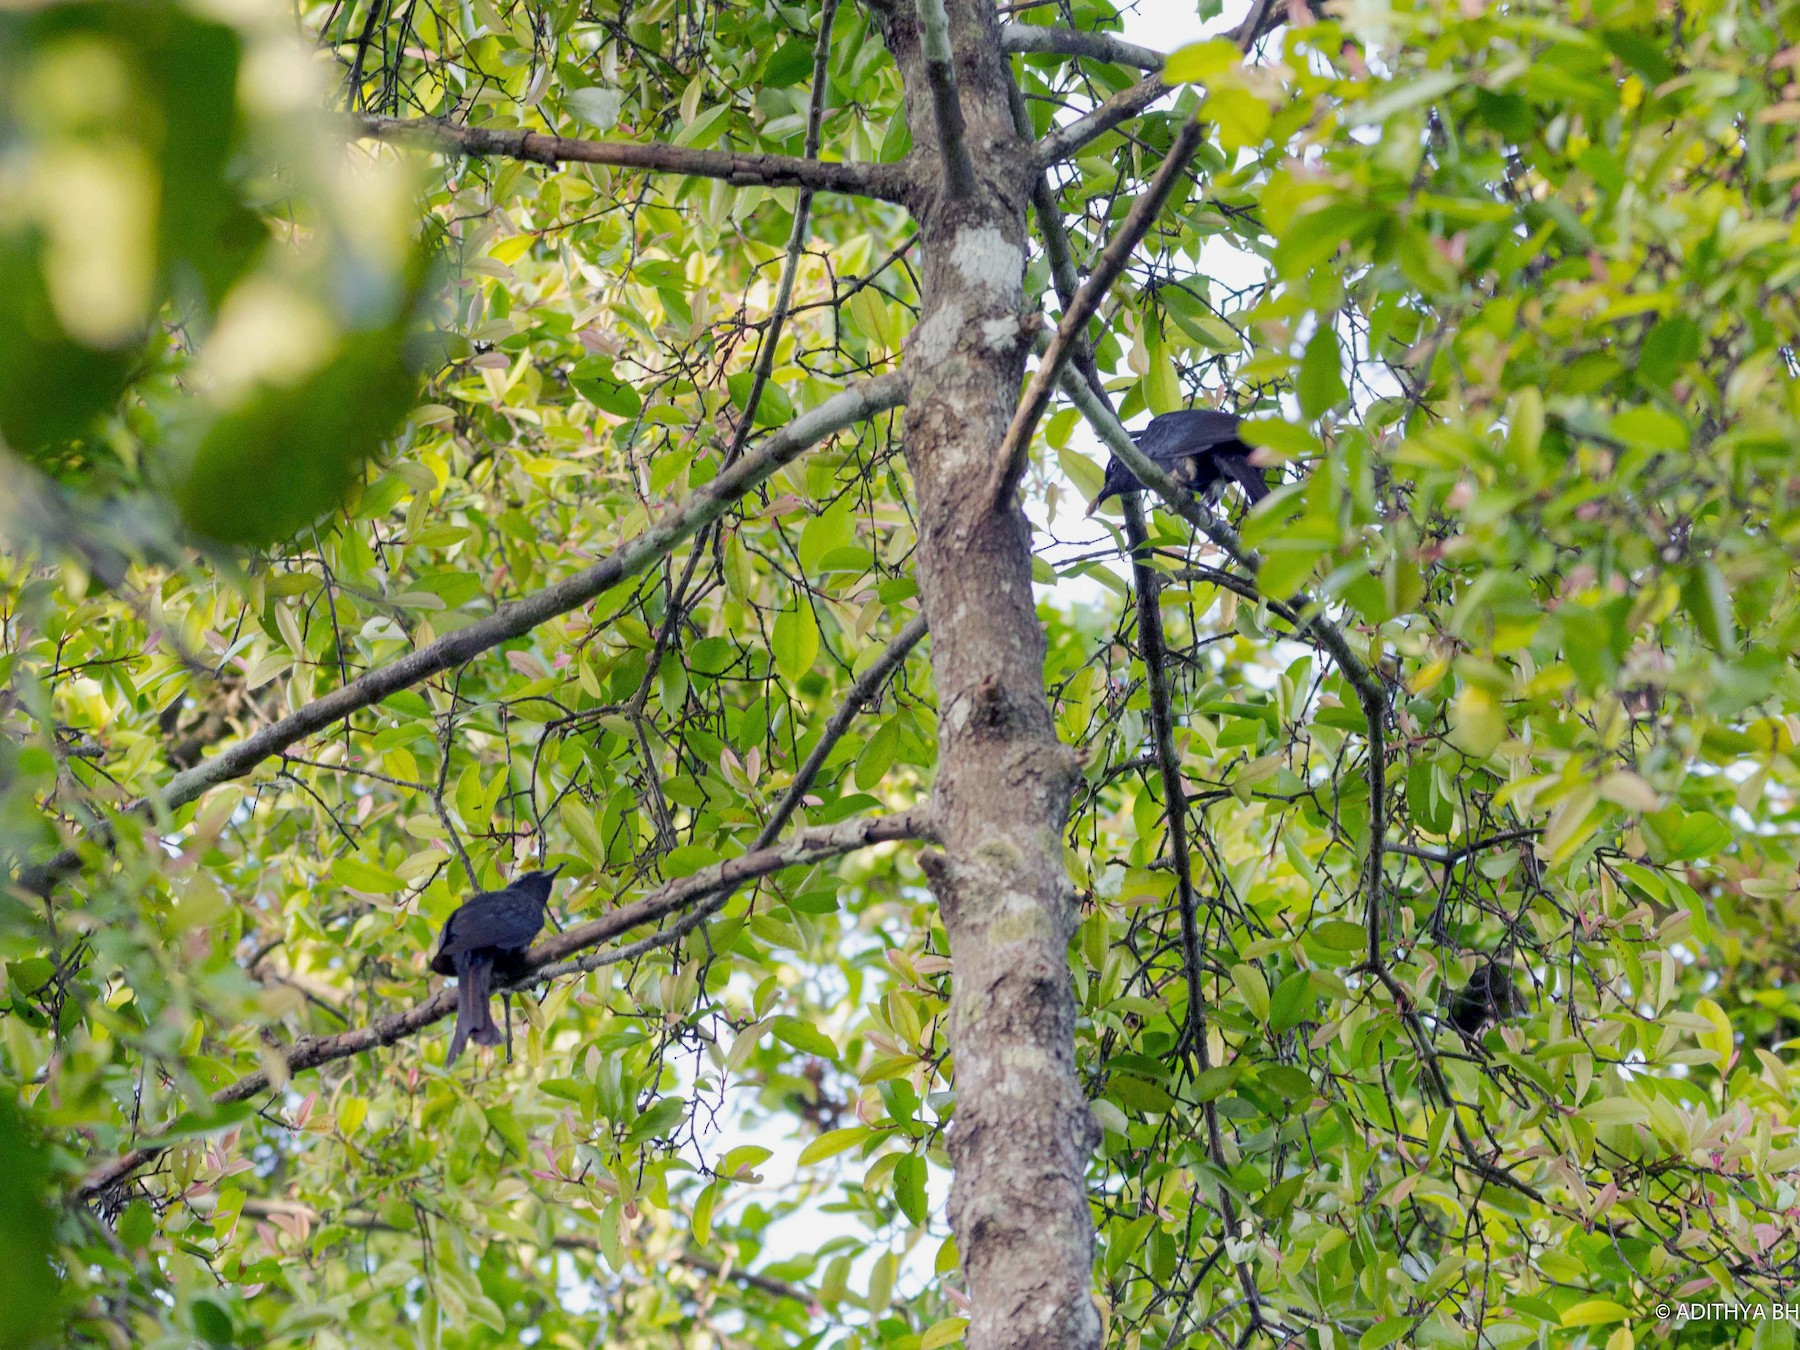 Fork-tailed Drongo-Cuckoo - Adithya Bhat